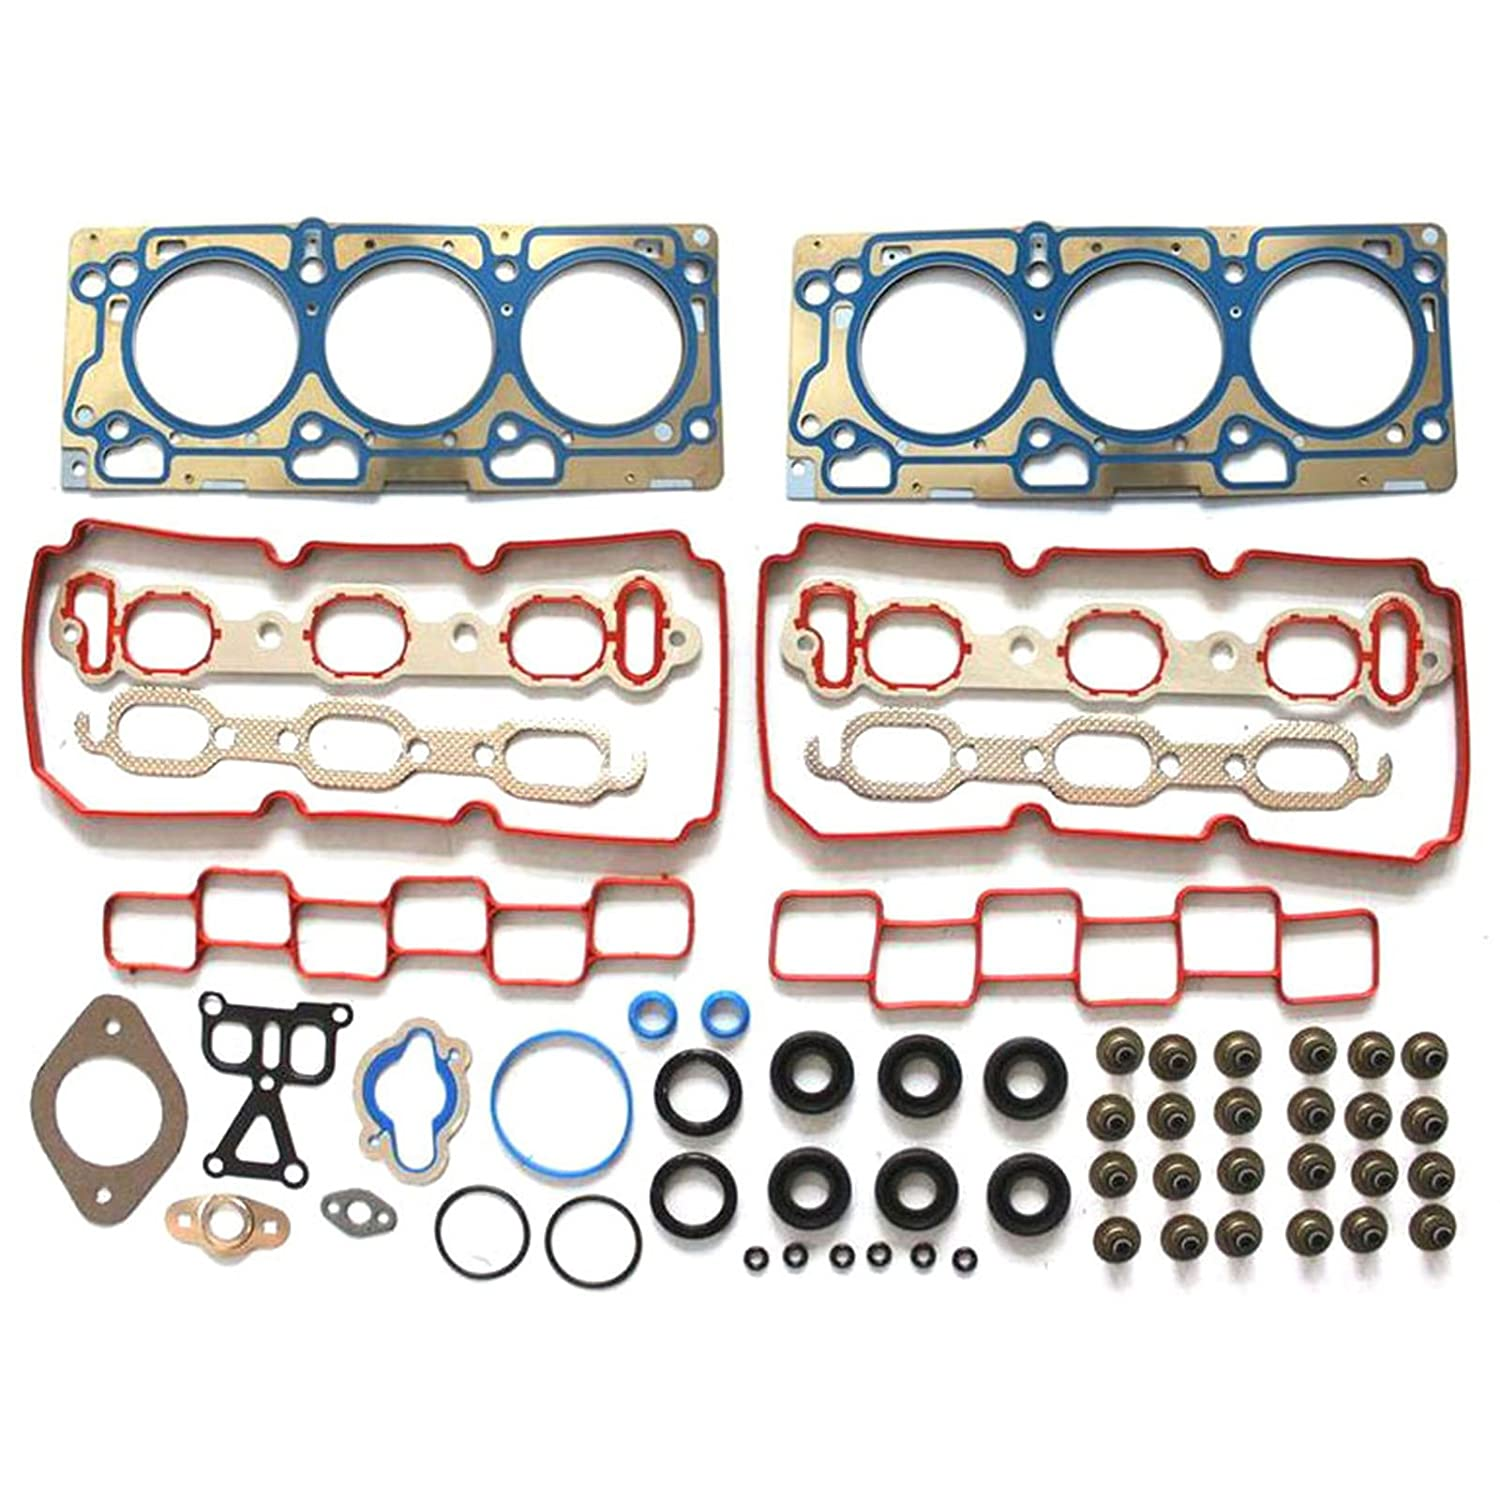 SCITOO Compatible fit for Head Gasket Kits Dodge/ Charger Avenger Chrysler/ Sebring 2007-2009 Engine Head Gaskets Automotive Replacement Gasket Set